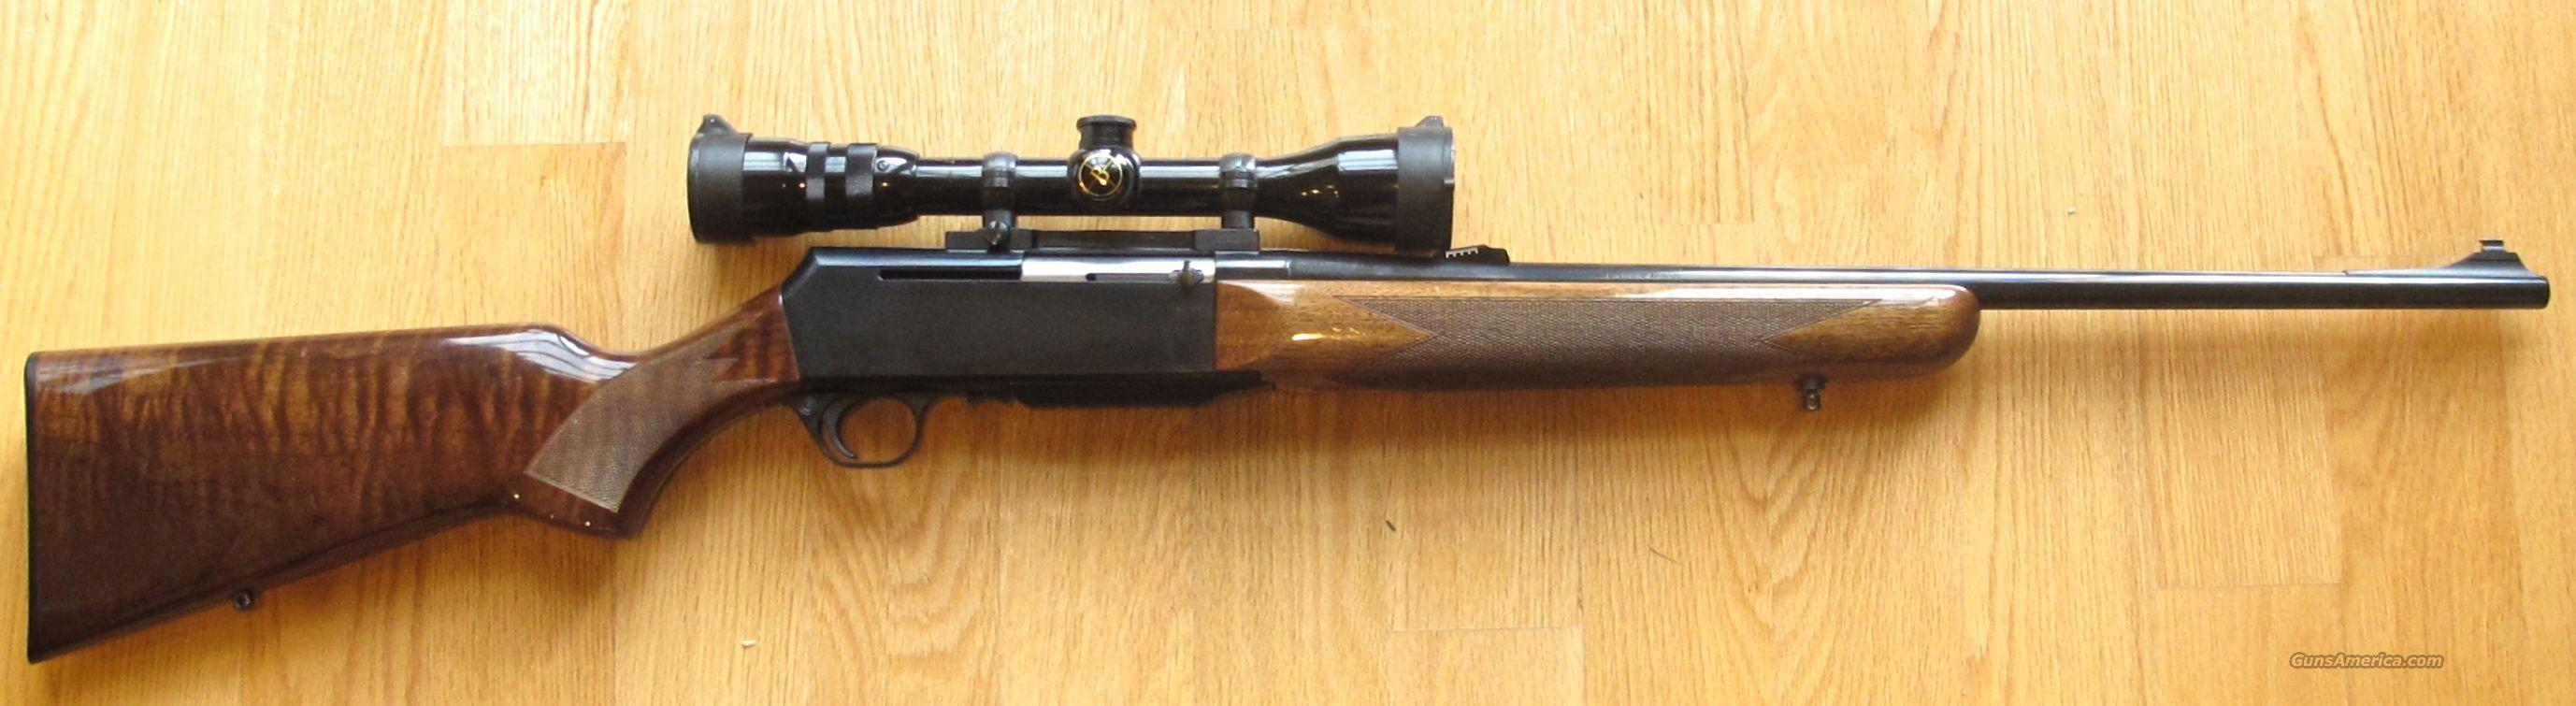 Browning Belgium .308 BAR 1983 Spectacular  Guns > Rifles > Browning Rifles > Semi Auto > Hunting